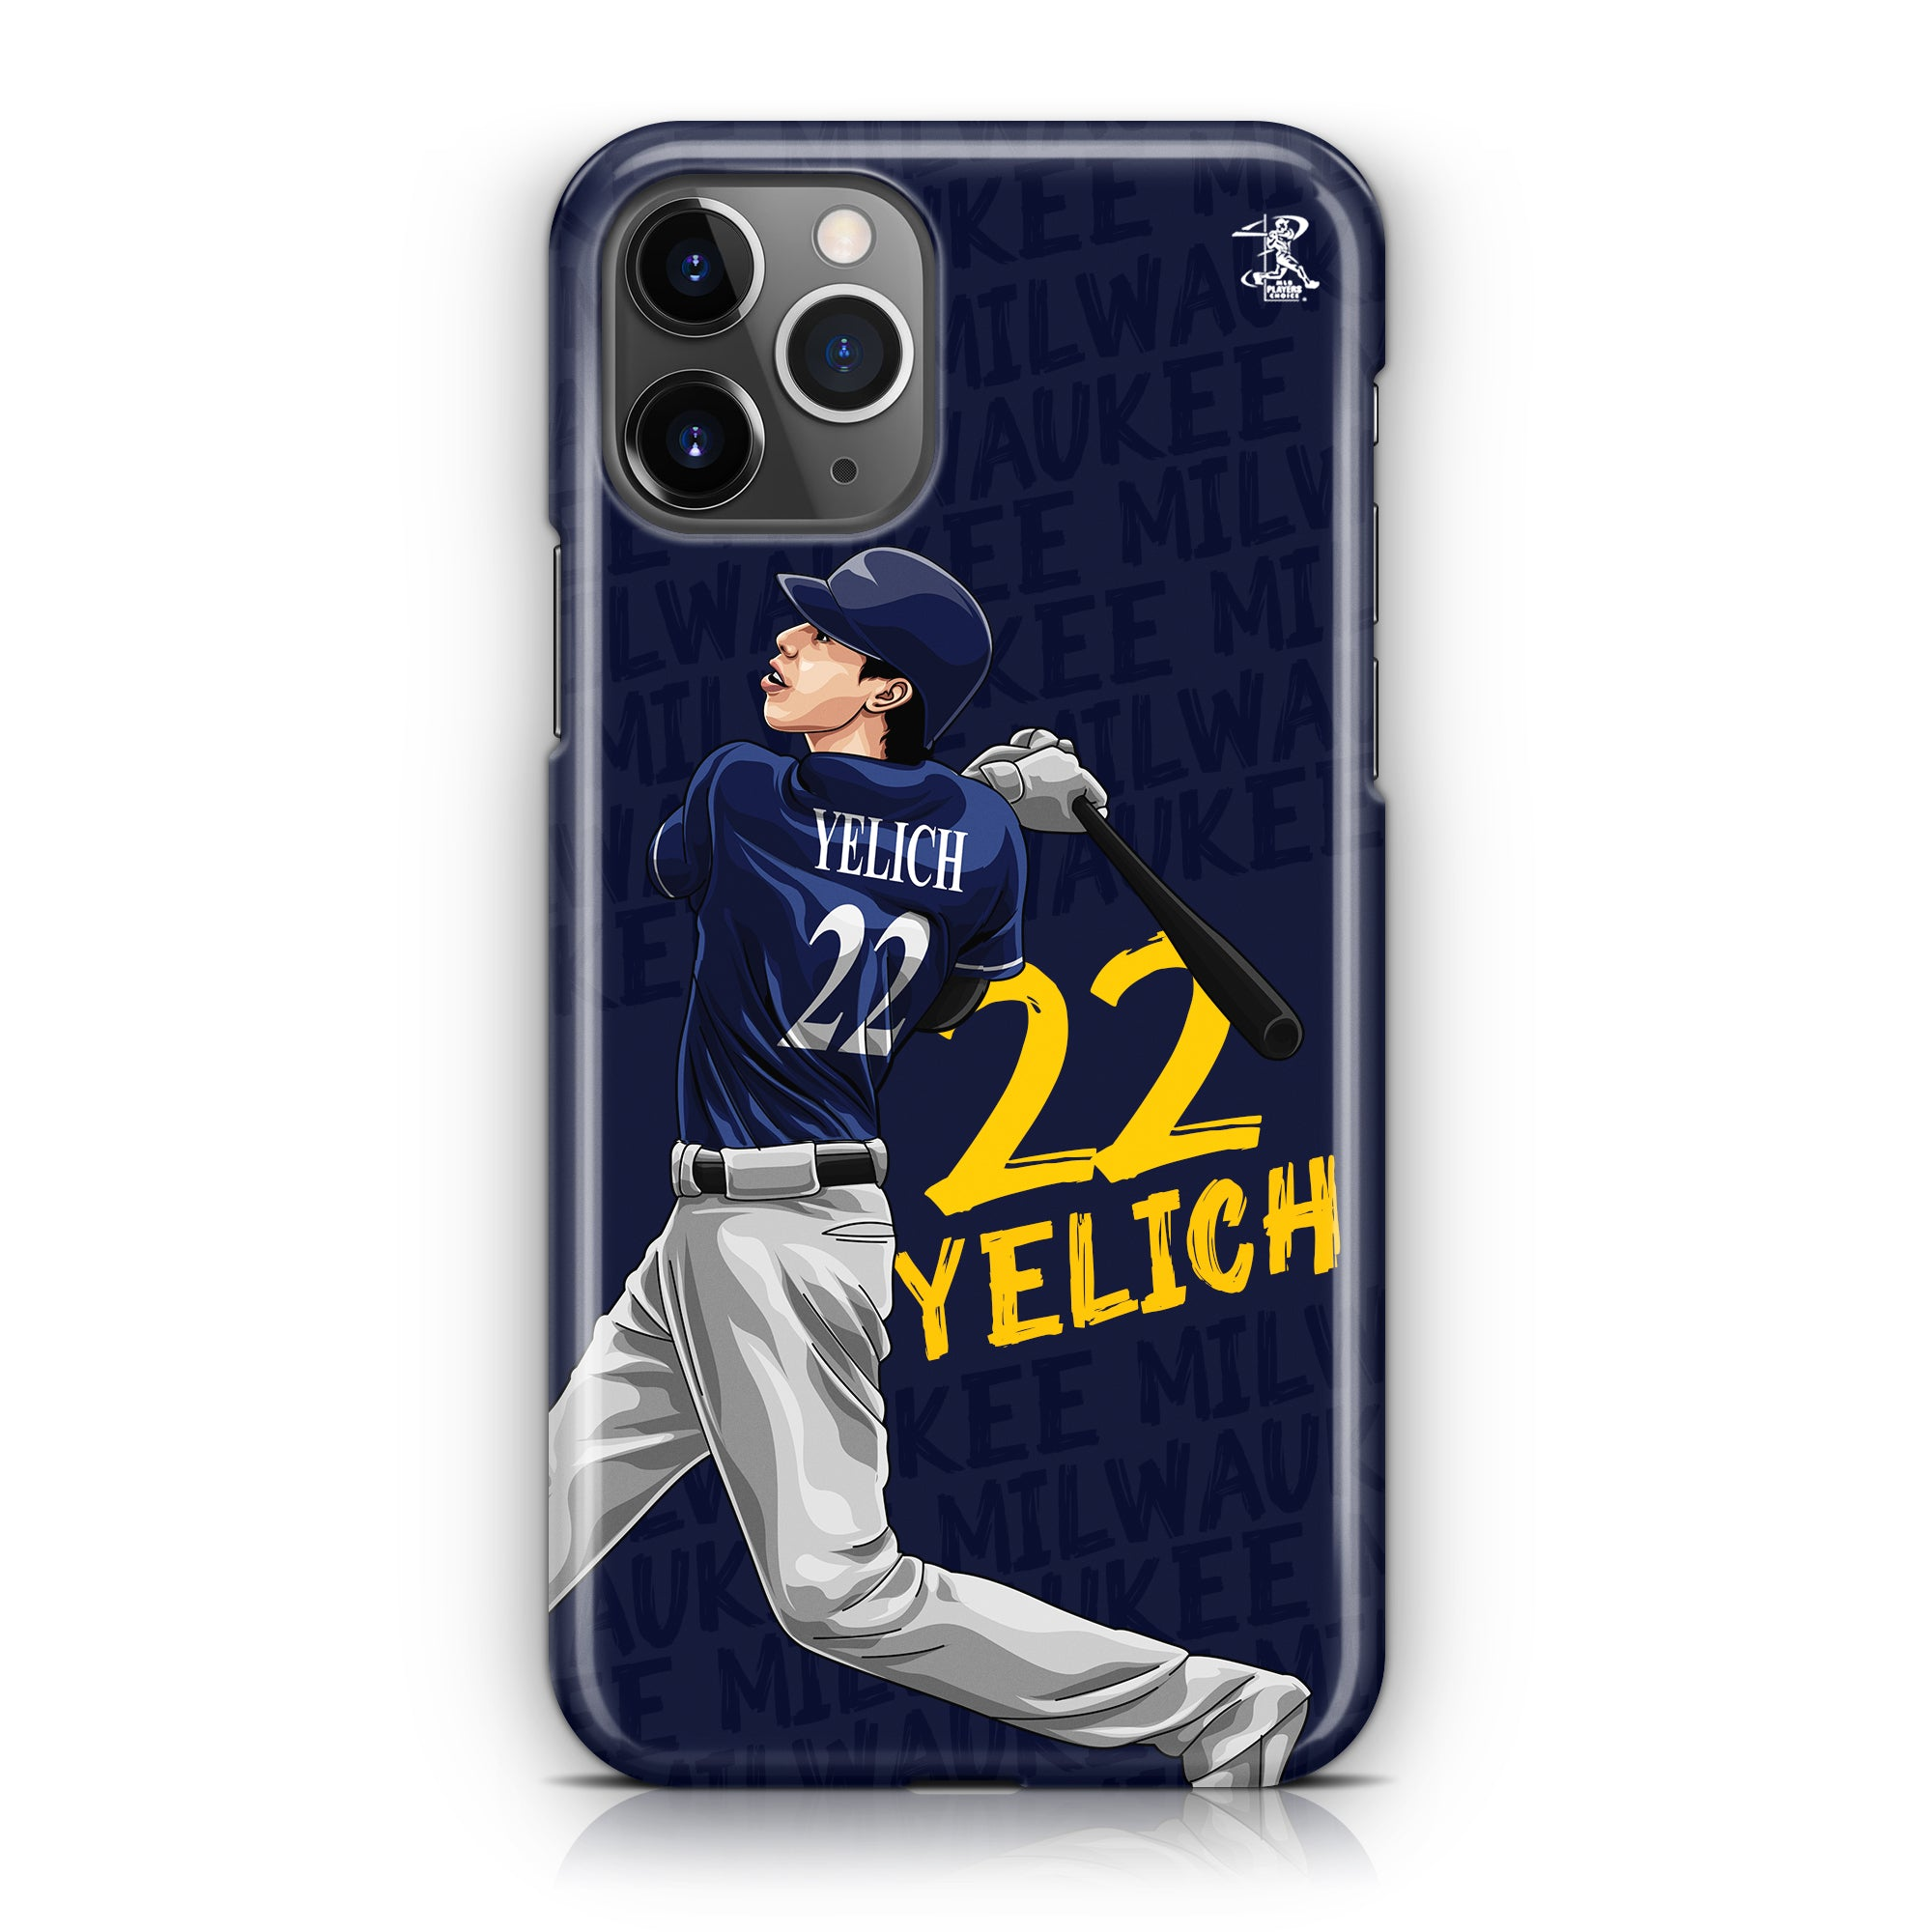 Yelich Star Series 2.0 Case